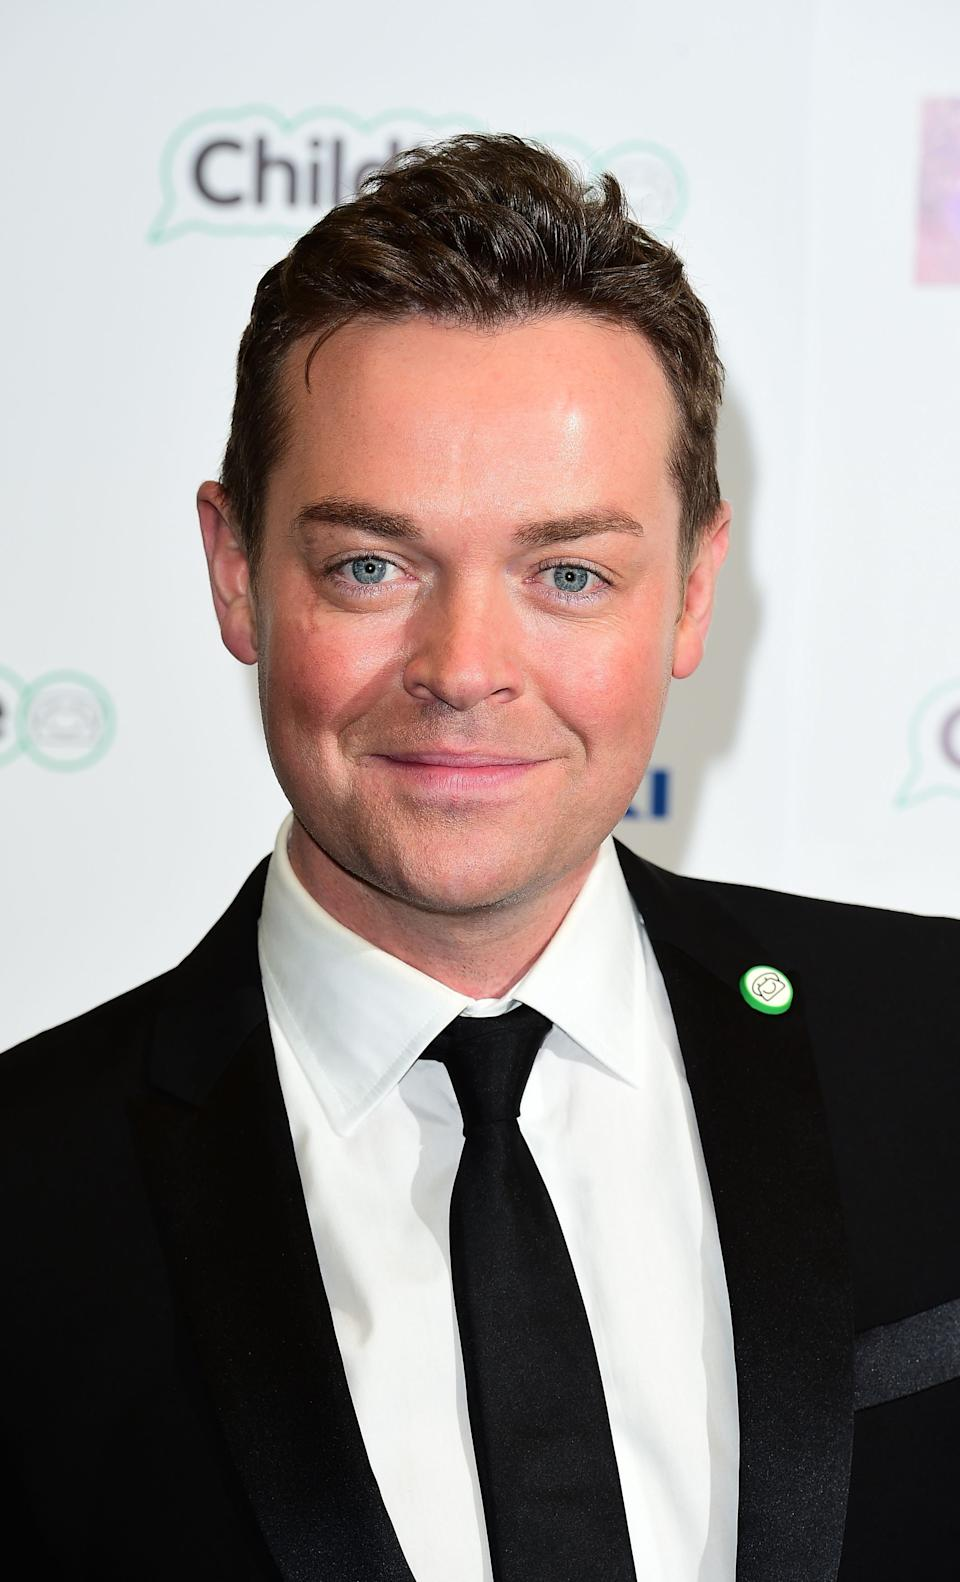 Stephen Mulhern attending Ant & Dec's Saturday Night Takeaway Childline Ball at Old Billingsgate in London.